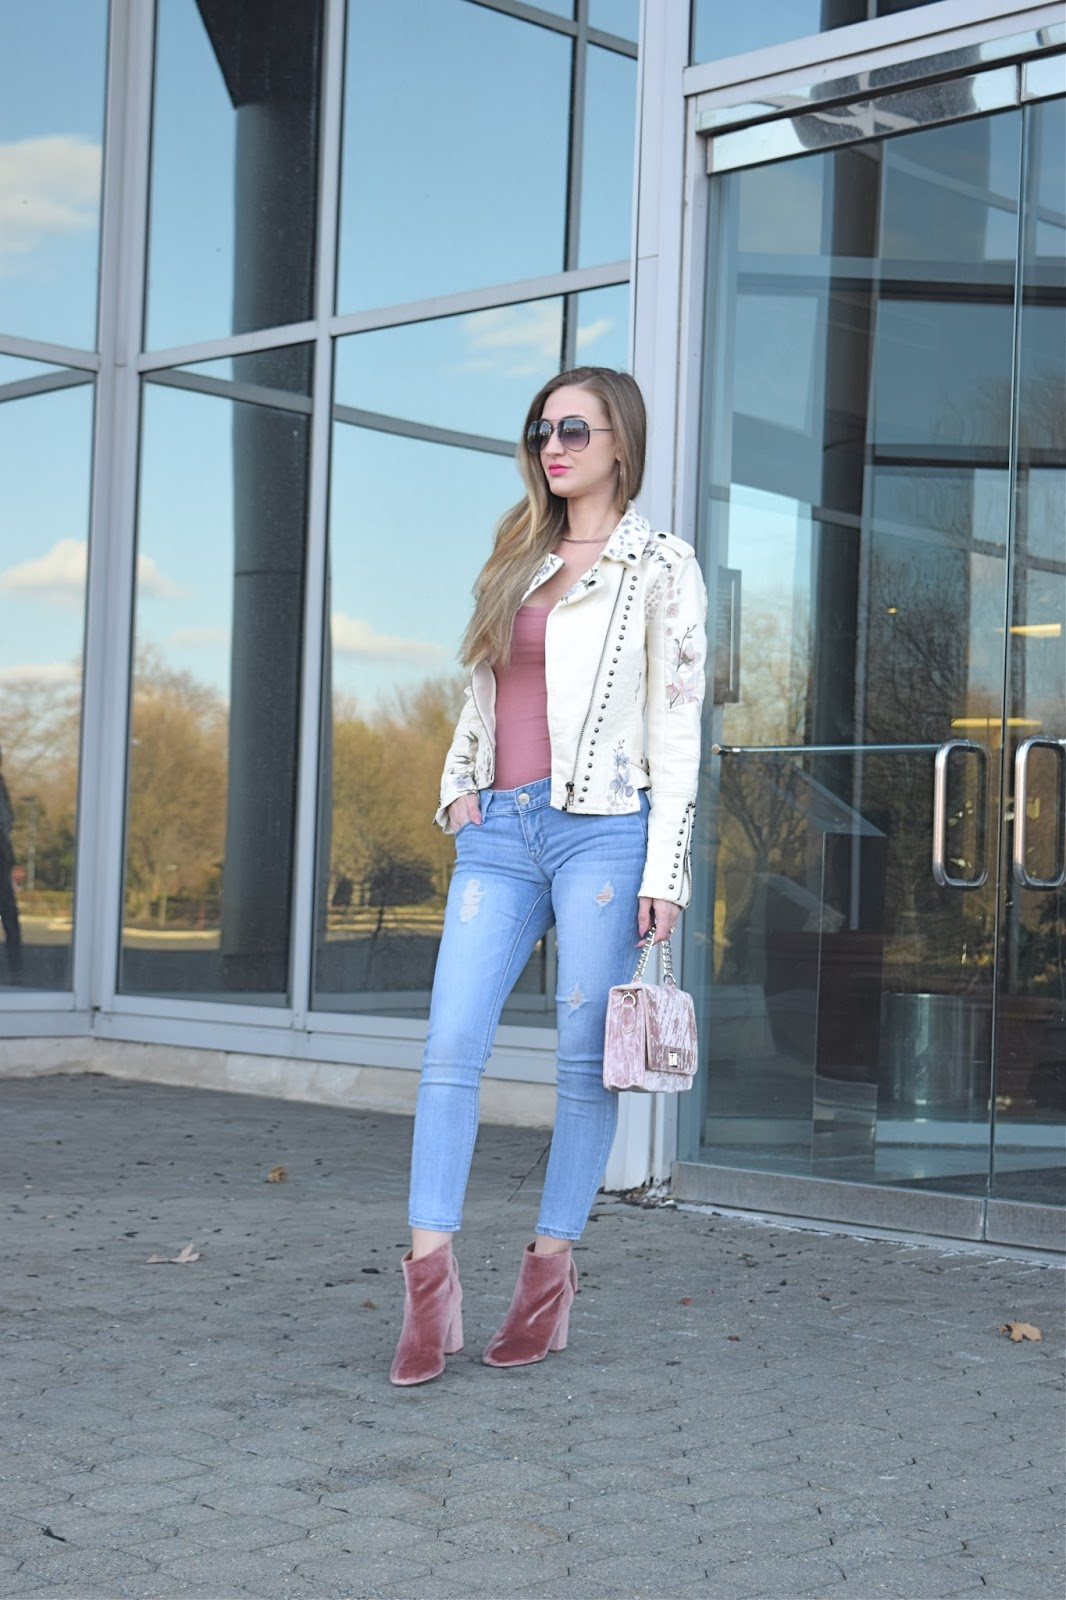 Wearing Blank Ivory Vegan Floral Embroidered Moto Jacket, Rose colored basic body from forever21, wearing Steve madden cythiav pink velvet booties, Wearing pink velvt chain purse, Express mid rise distressed jeans, spring leather jacket look